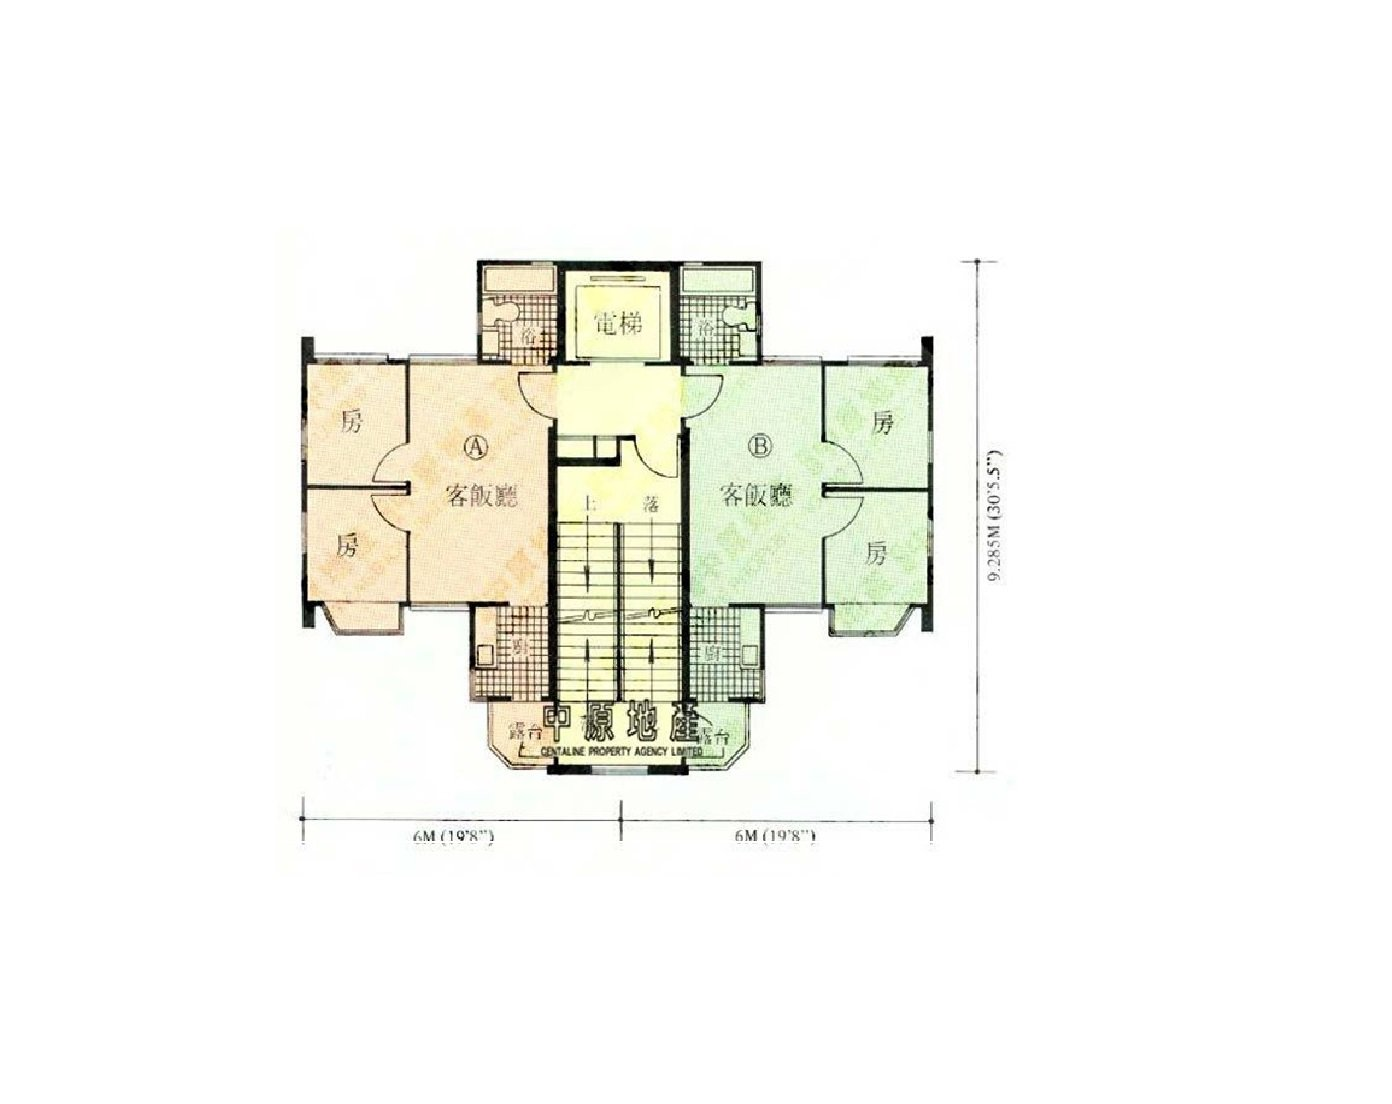 bid_deco_floorplan_1492268797.jpg